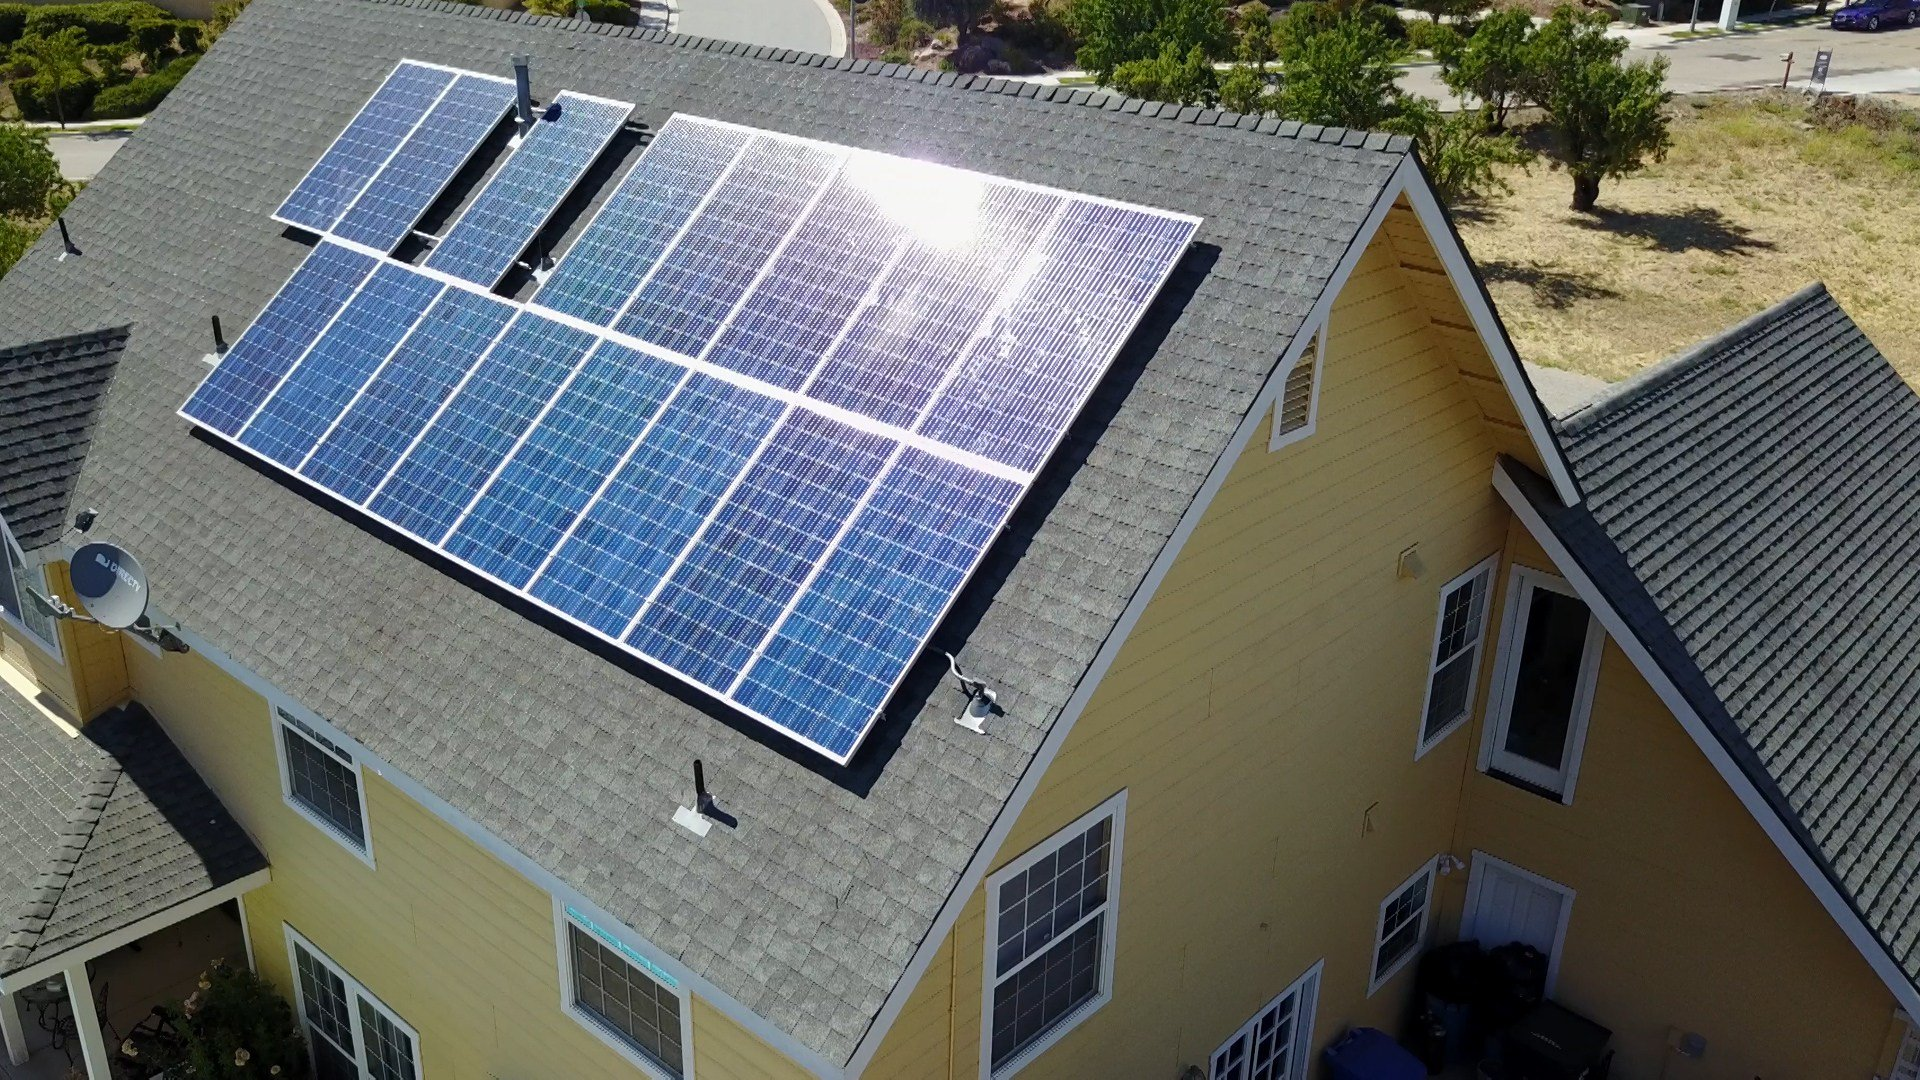 California Will Require Solar Panels on New Homes Beginning in 2020